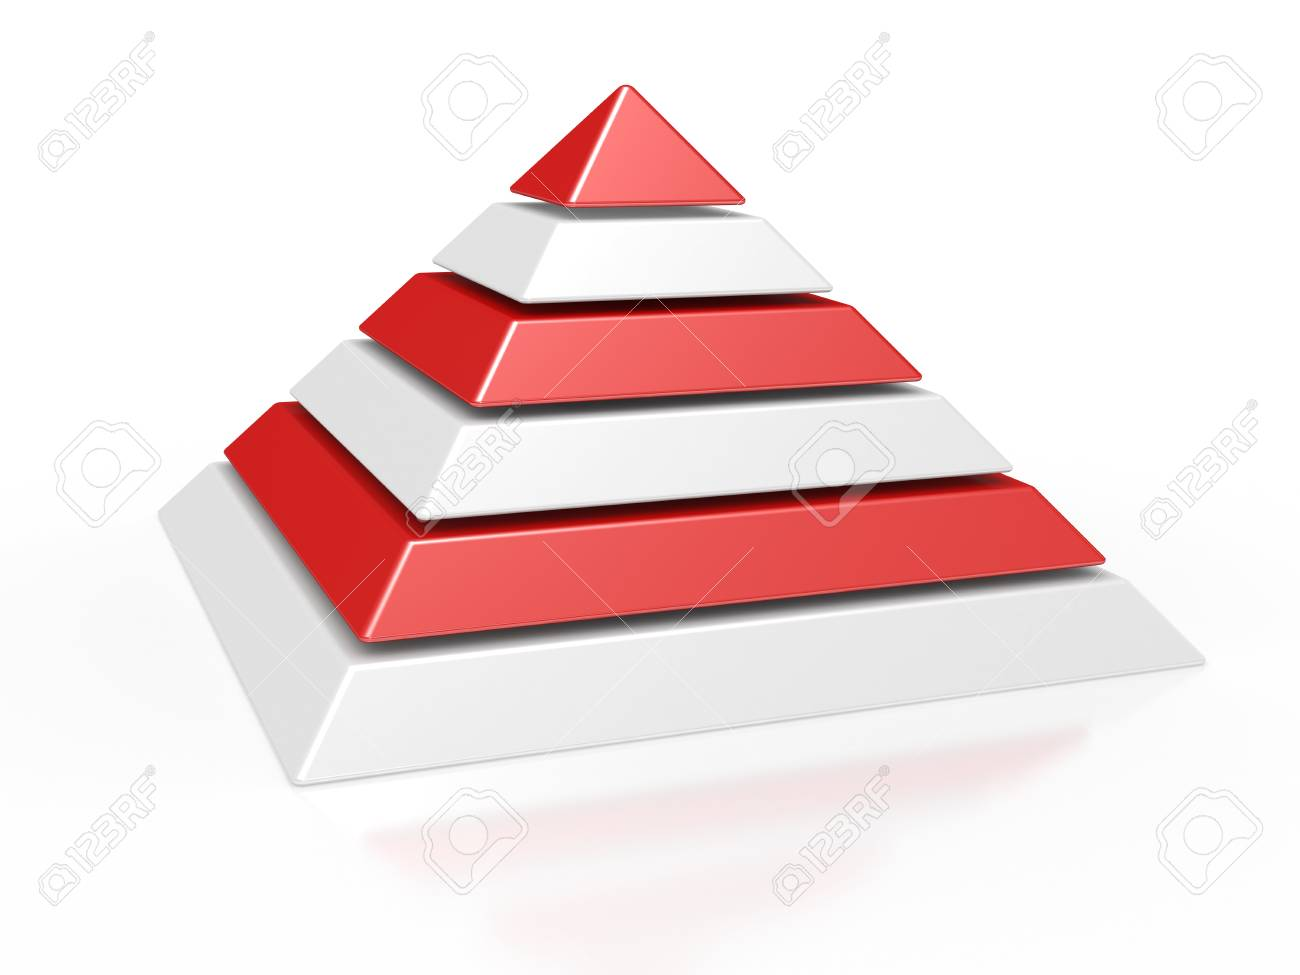 3d illustration of a pyramid with six colored levels Stock Photo - 11431609